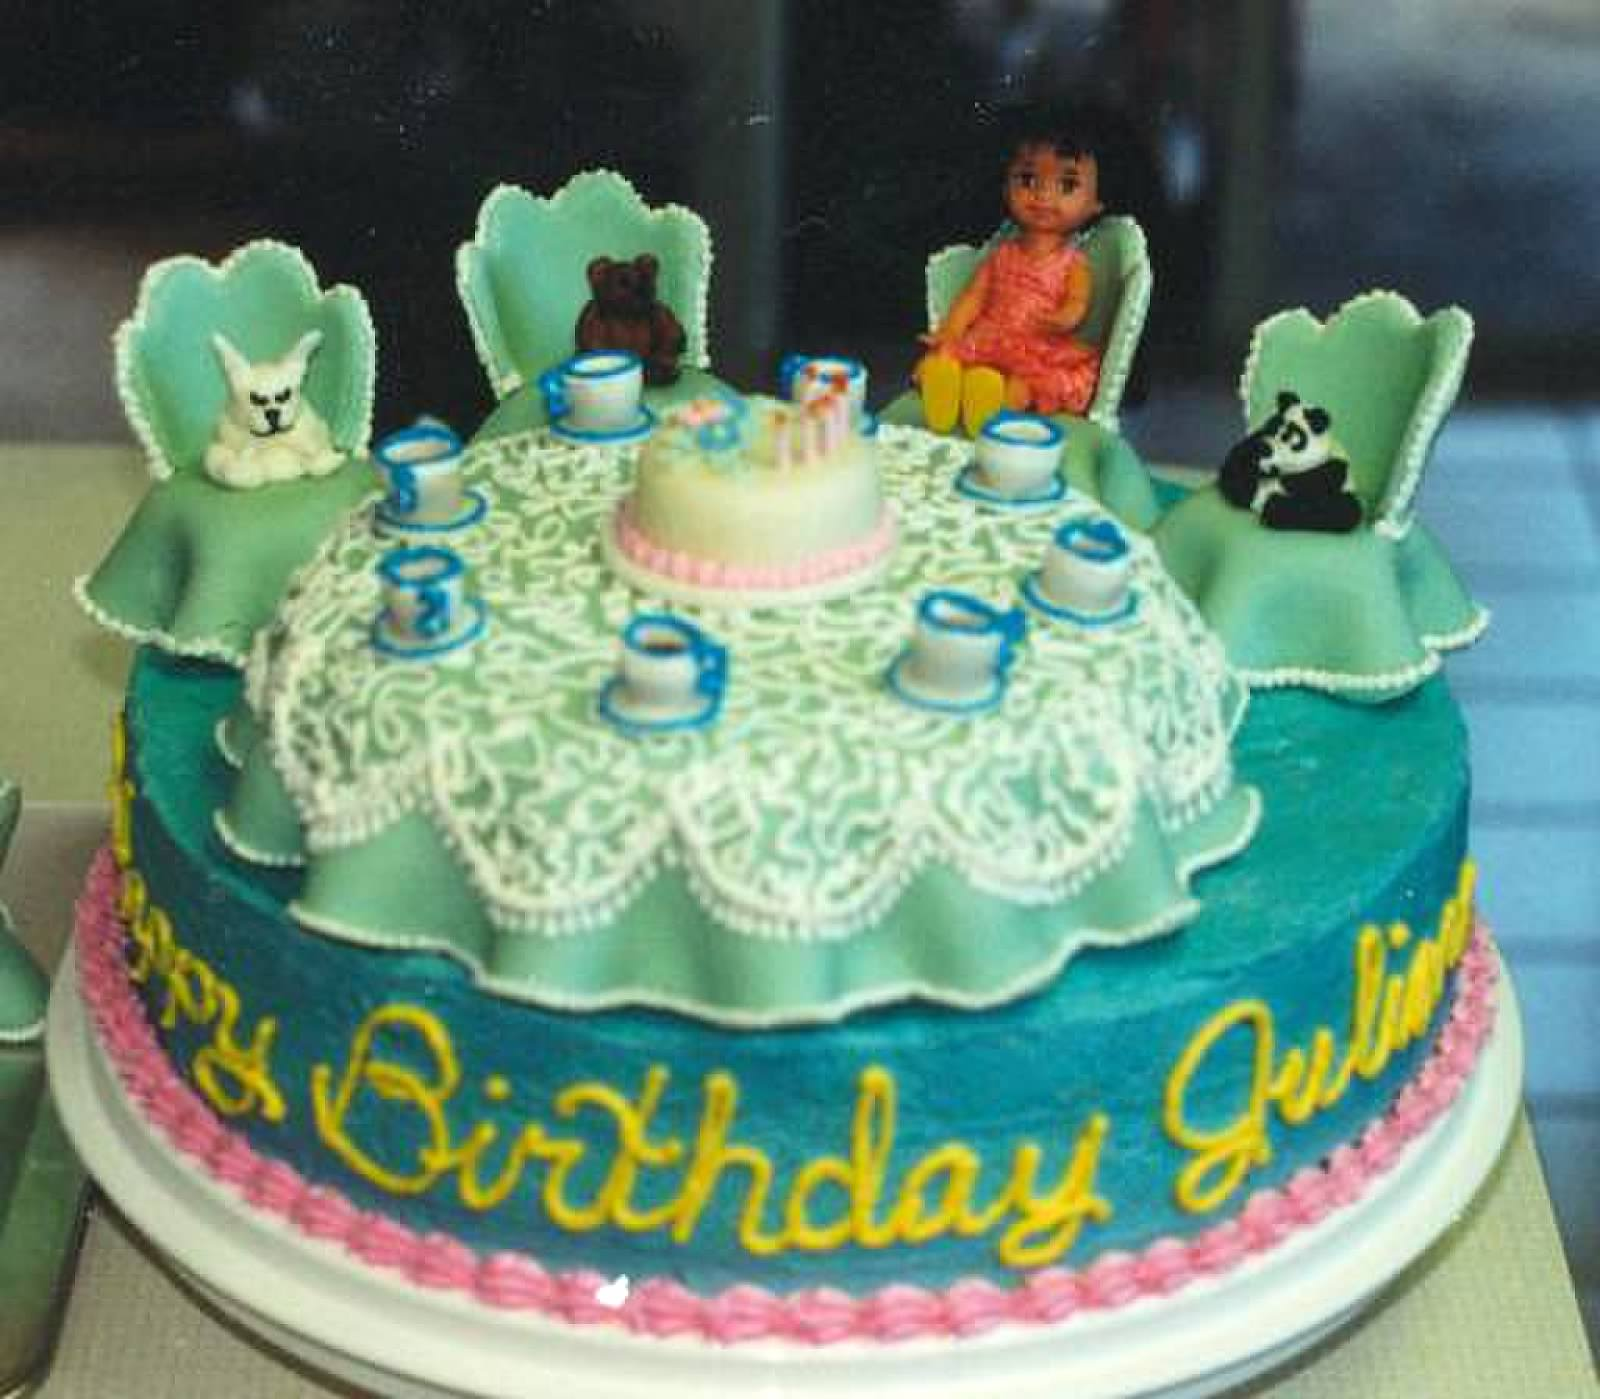 Birthday Cake Images Latest : File:Juliana Tea Party.jpg - Wikimedia Commons